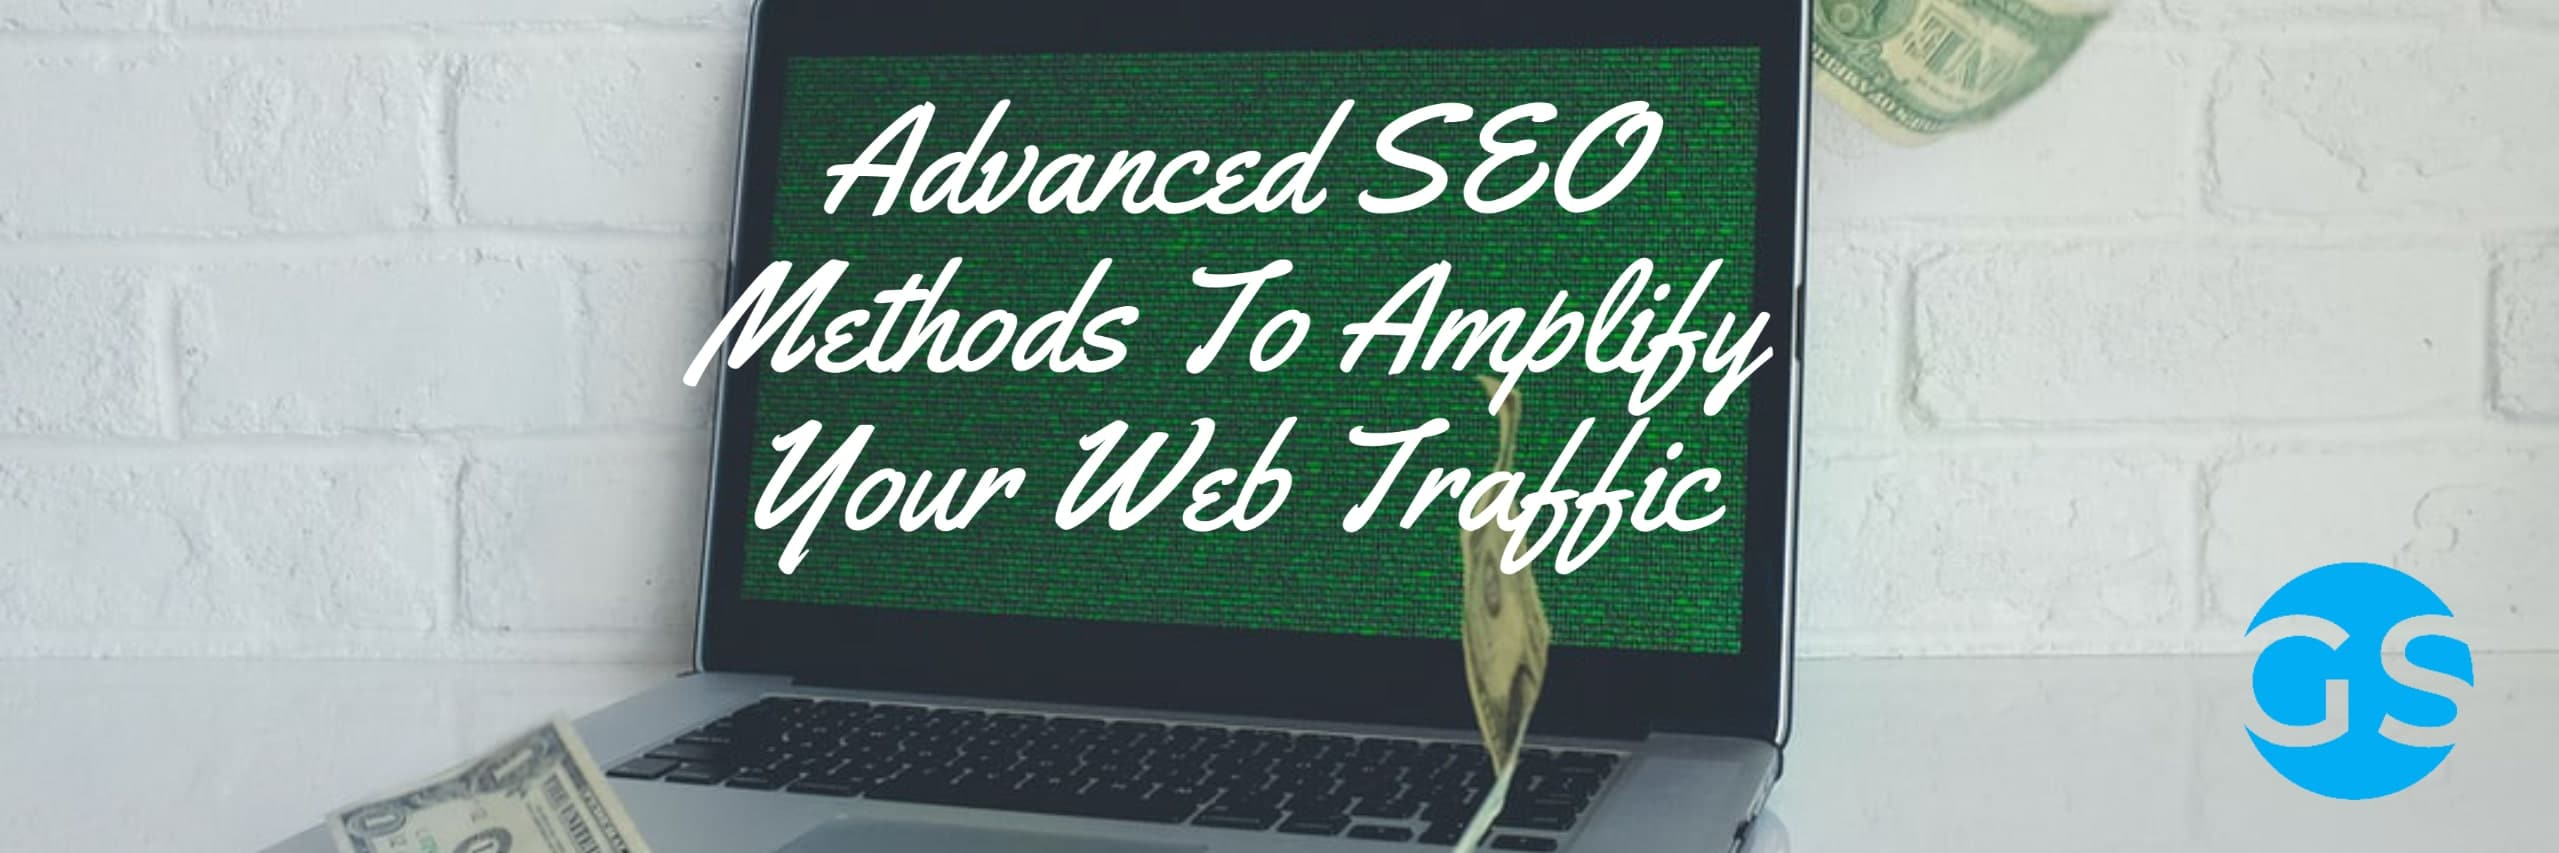 Advanced SEO Methods To Amplify Your Web Traffic in 2020